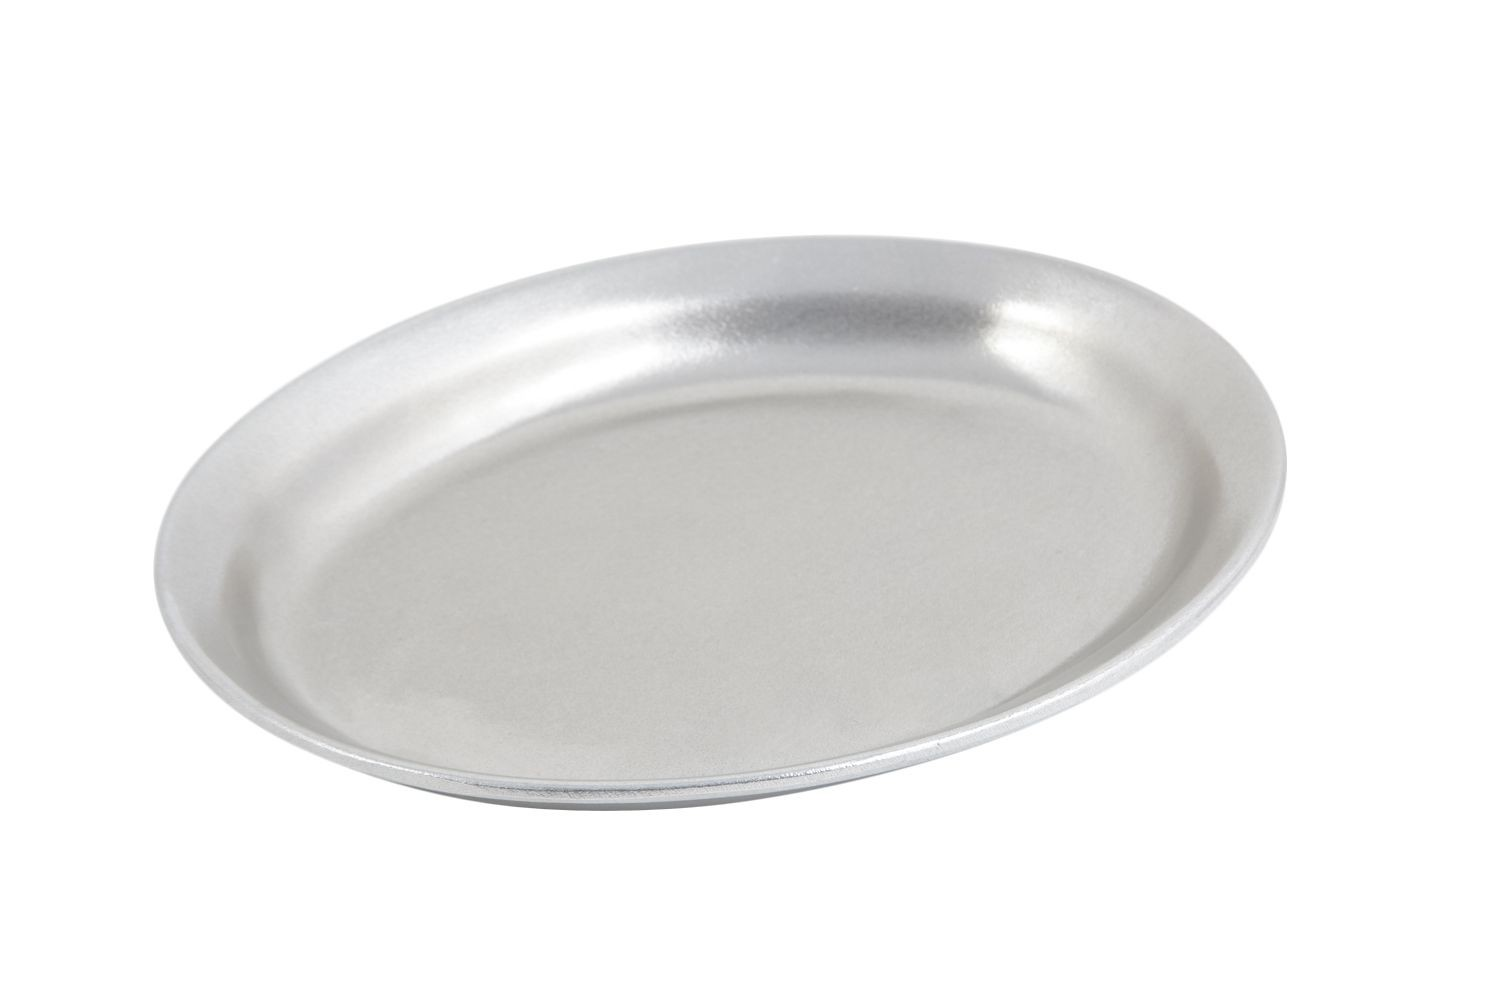 "Bon Chef 2034P Large Oval Platter, Pewter Glo 11 1/2"" x 9"" x 1 1/2"", Set of 3"